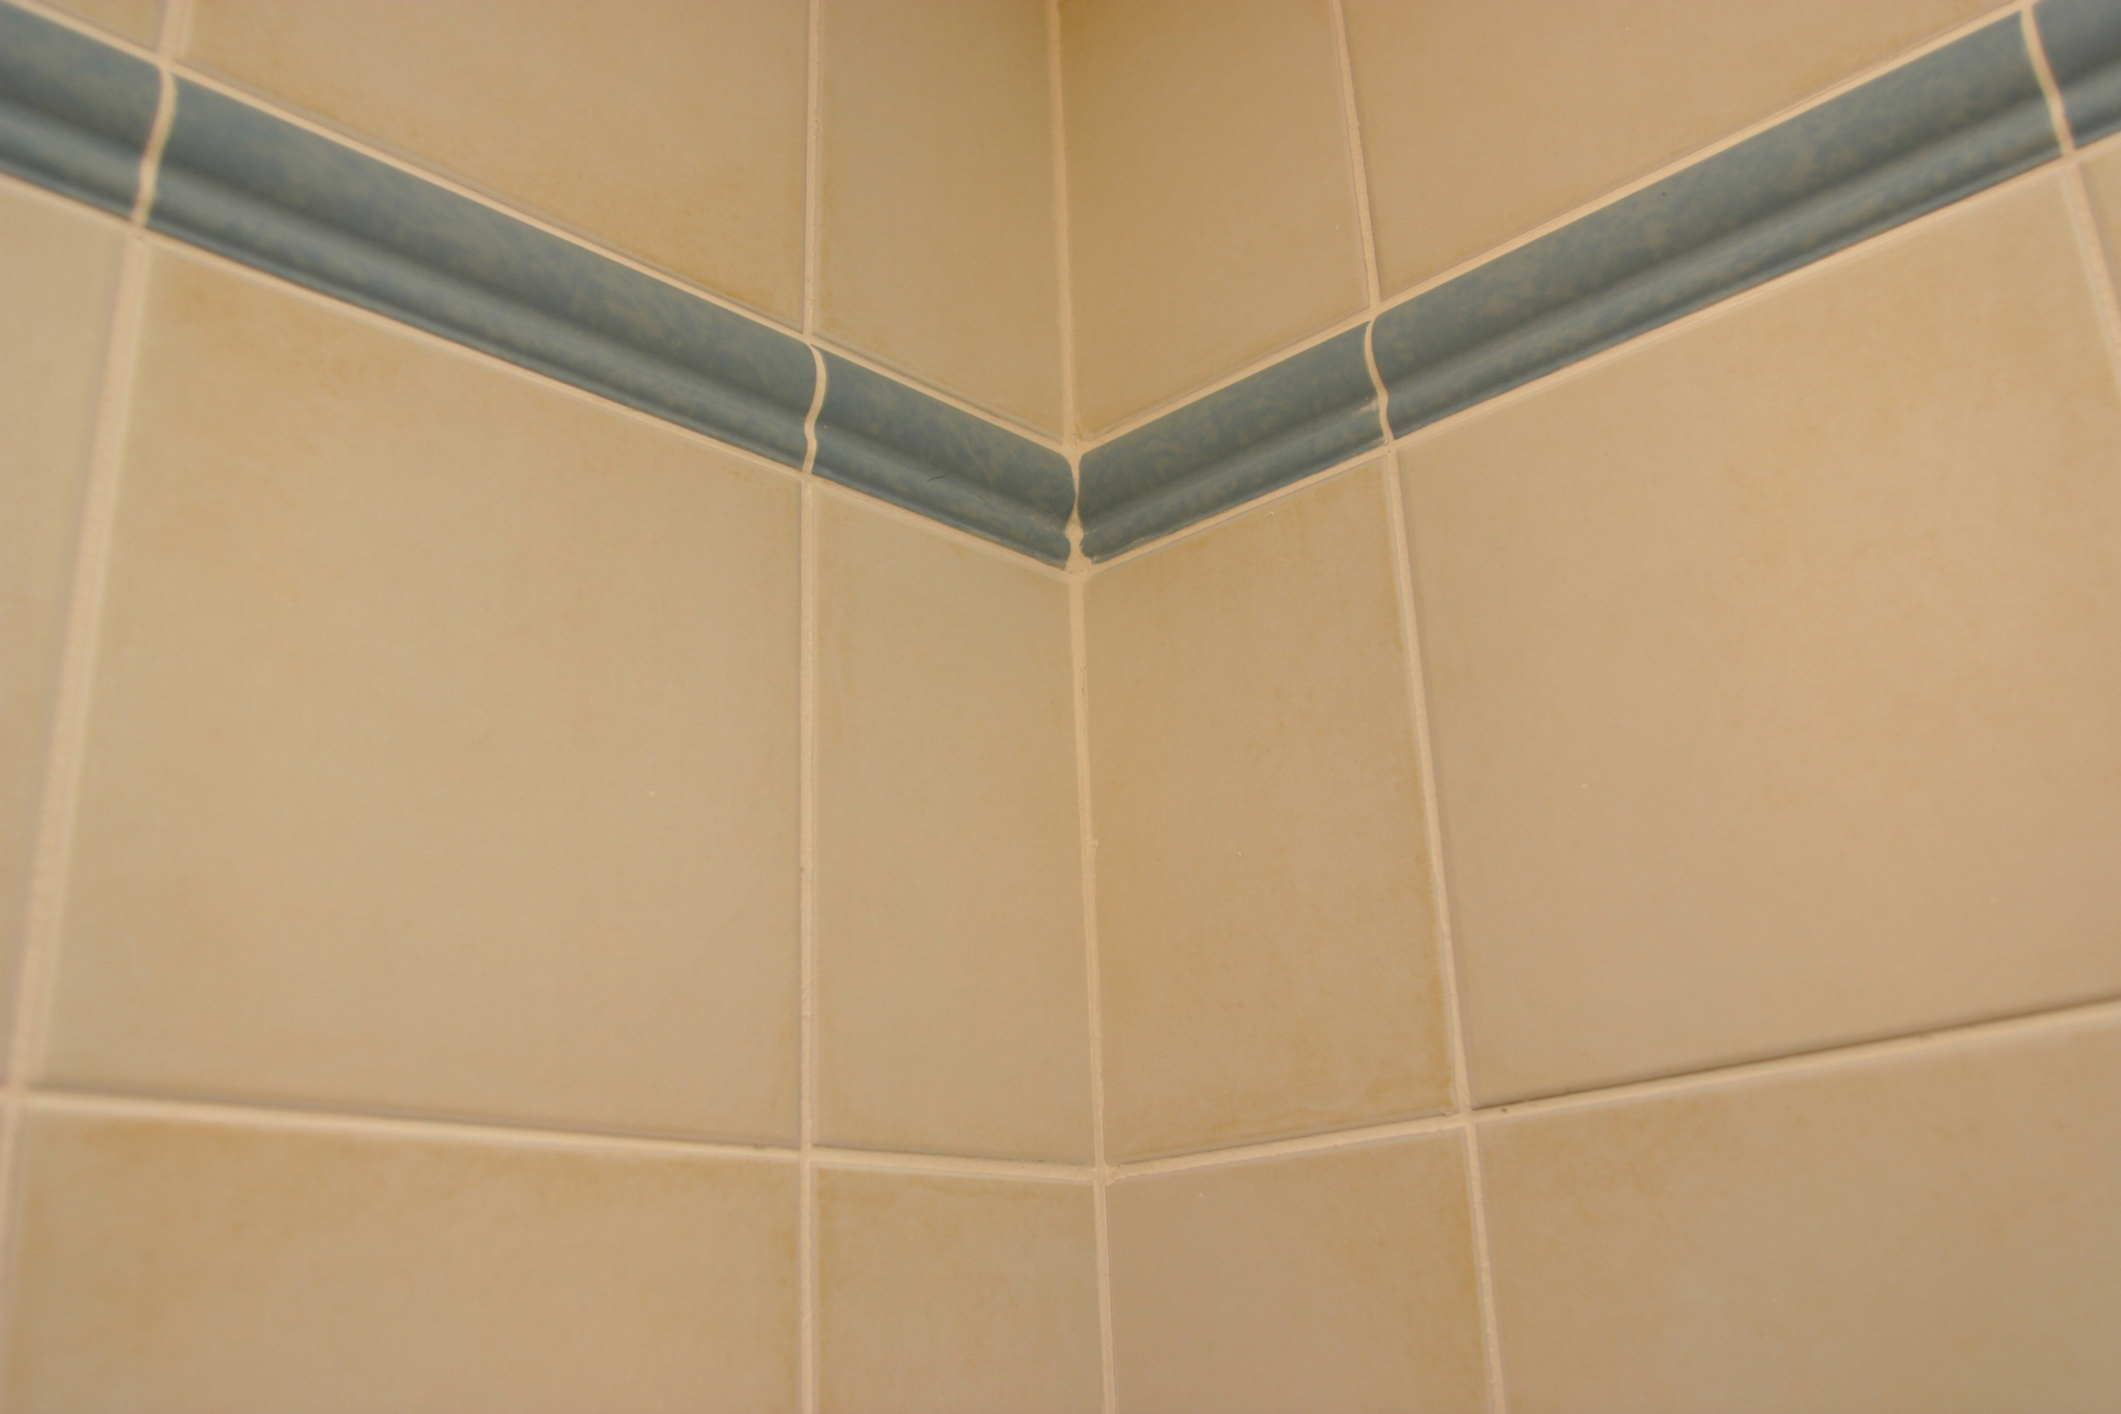 Bathroom Tiles Styles | Trusted Home Contractors